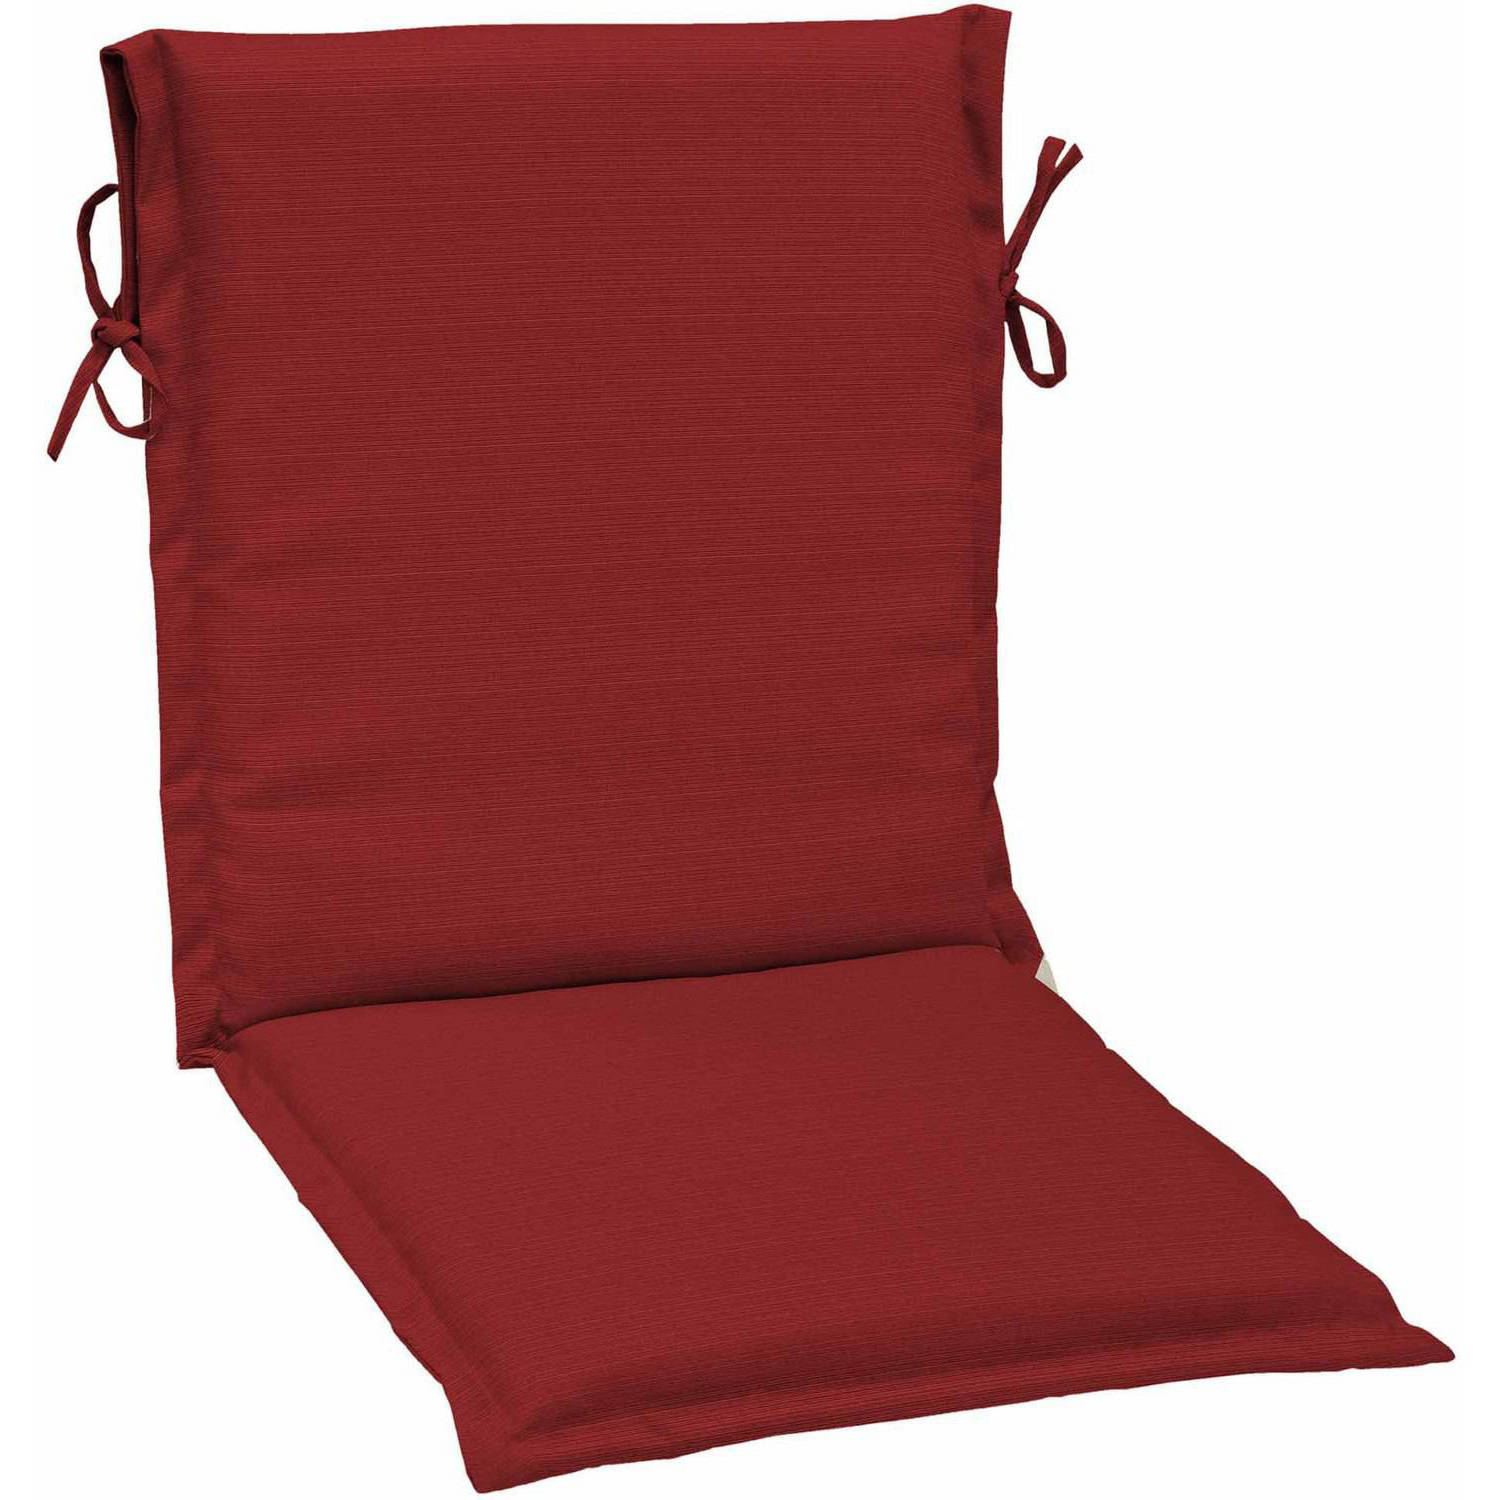 Exceptional Better Homes And Gardens Outdoor Patio Sling Chair Cushion, Red